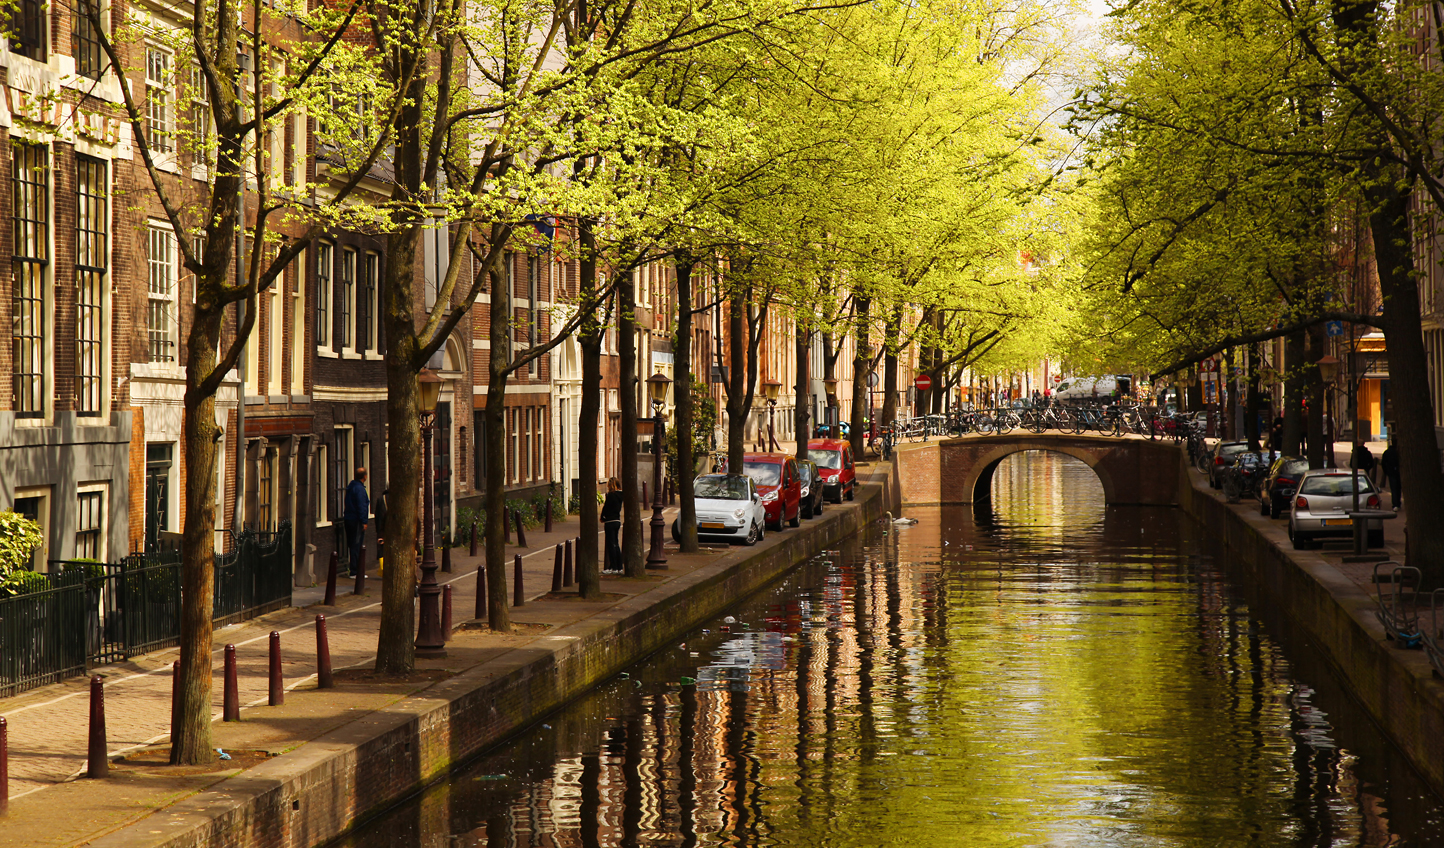 Wander down the canals